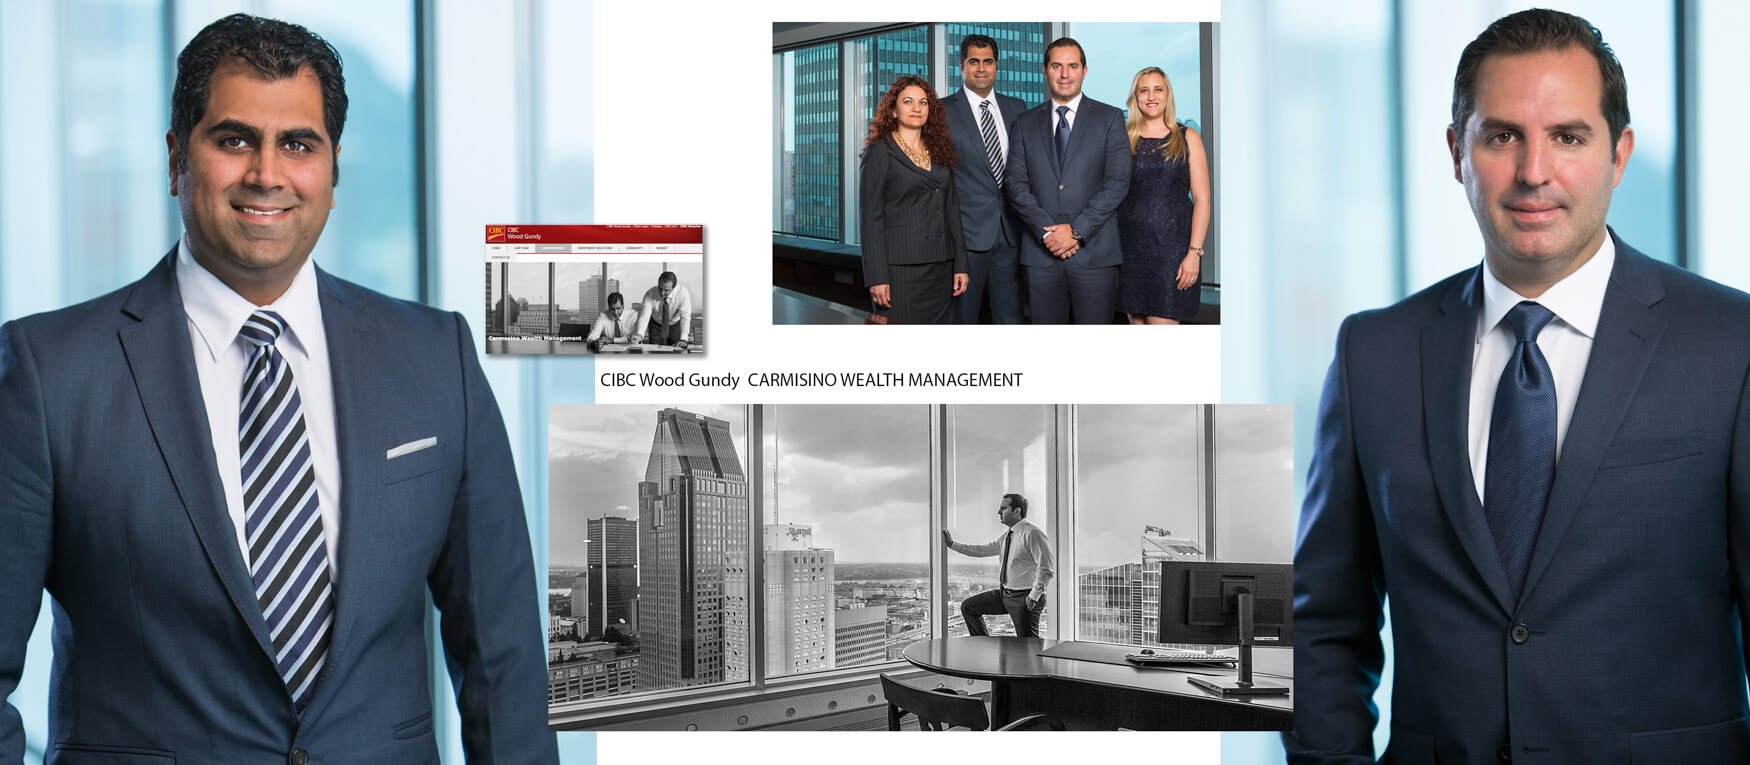 Corporate-Photo-Montage-of-CIBC-Wood-Gundy-Darren-Carmisino-Wealth-management